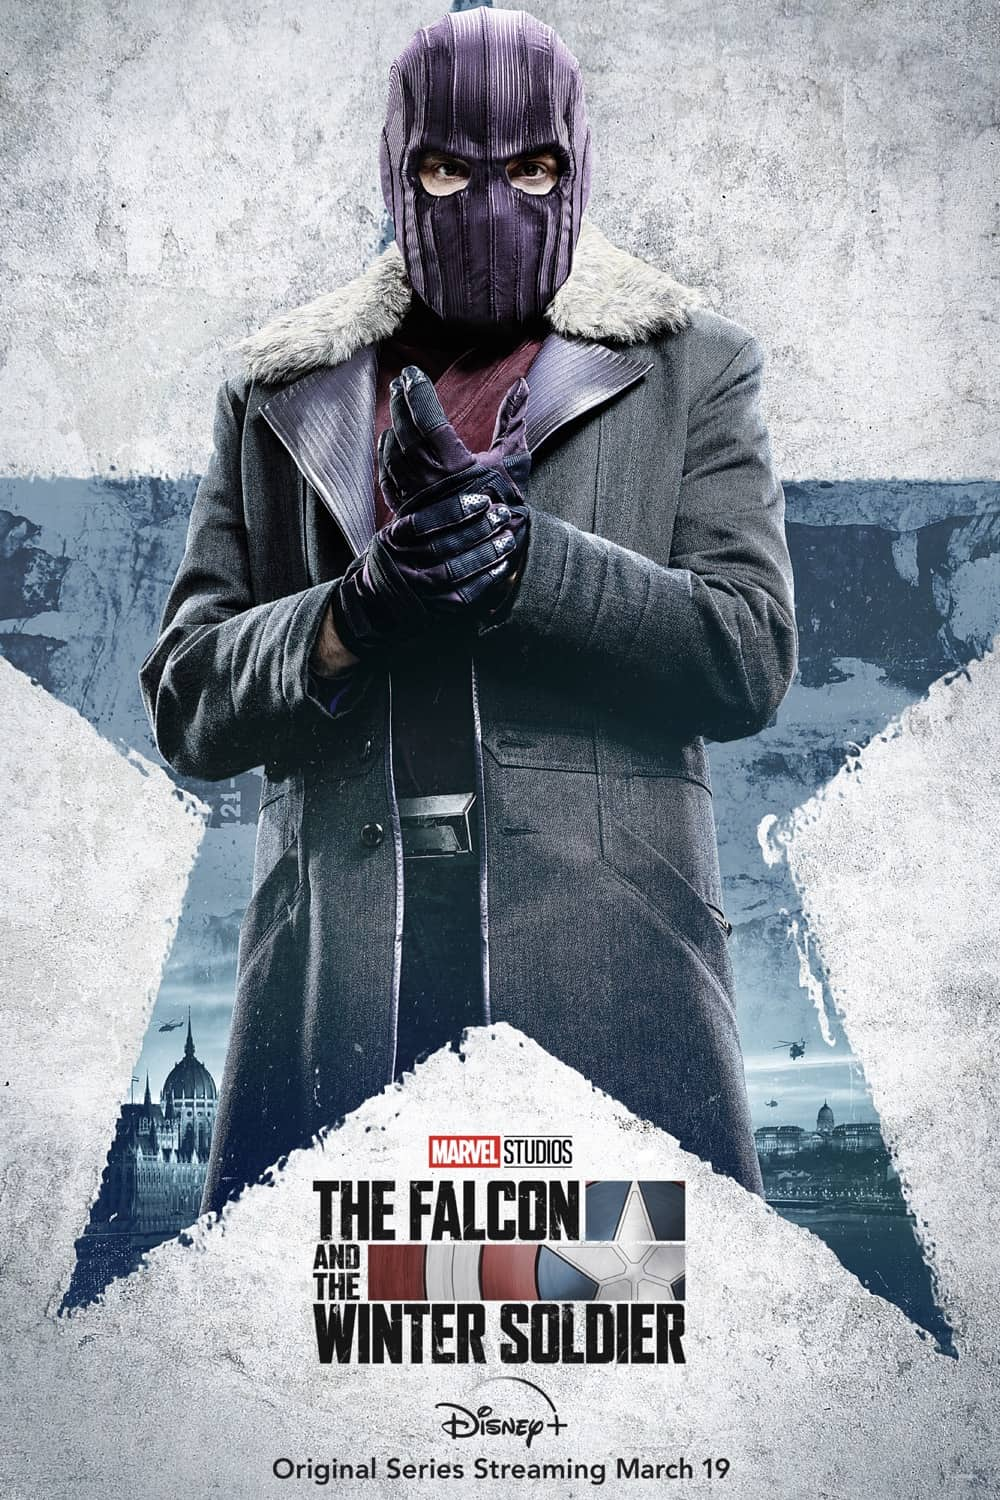 Daniel Brühl as Zemo The Falcon And The Winter Soldier Character Poster